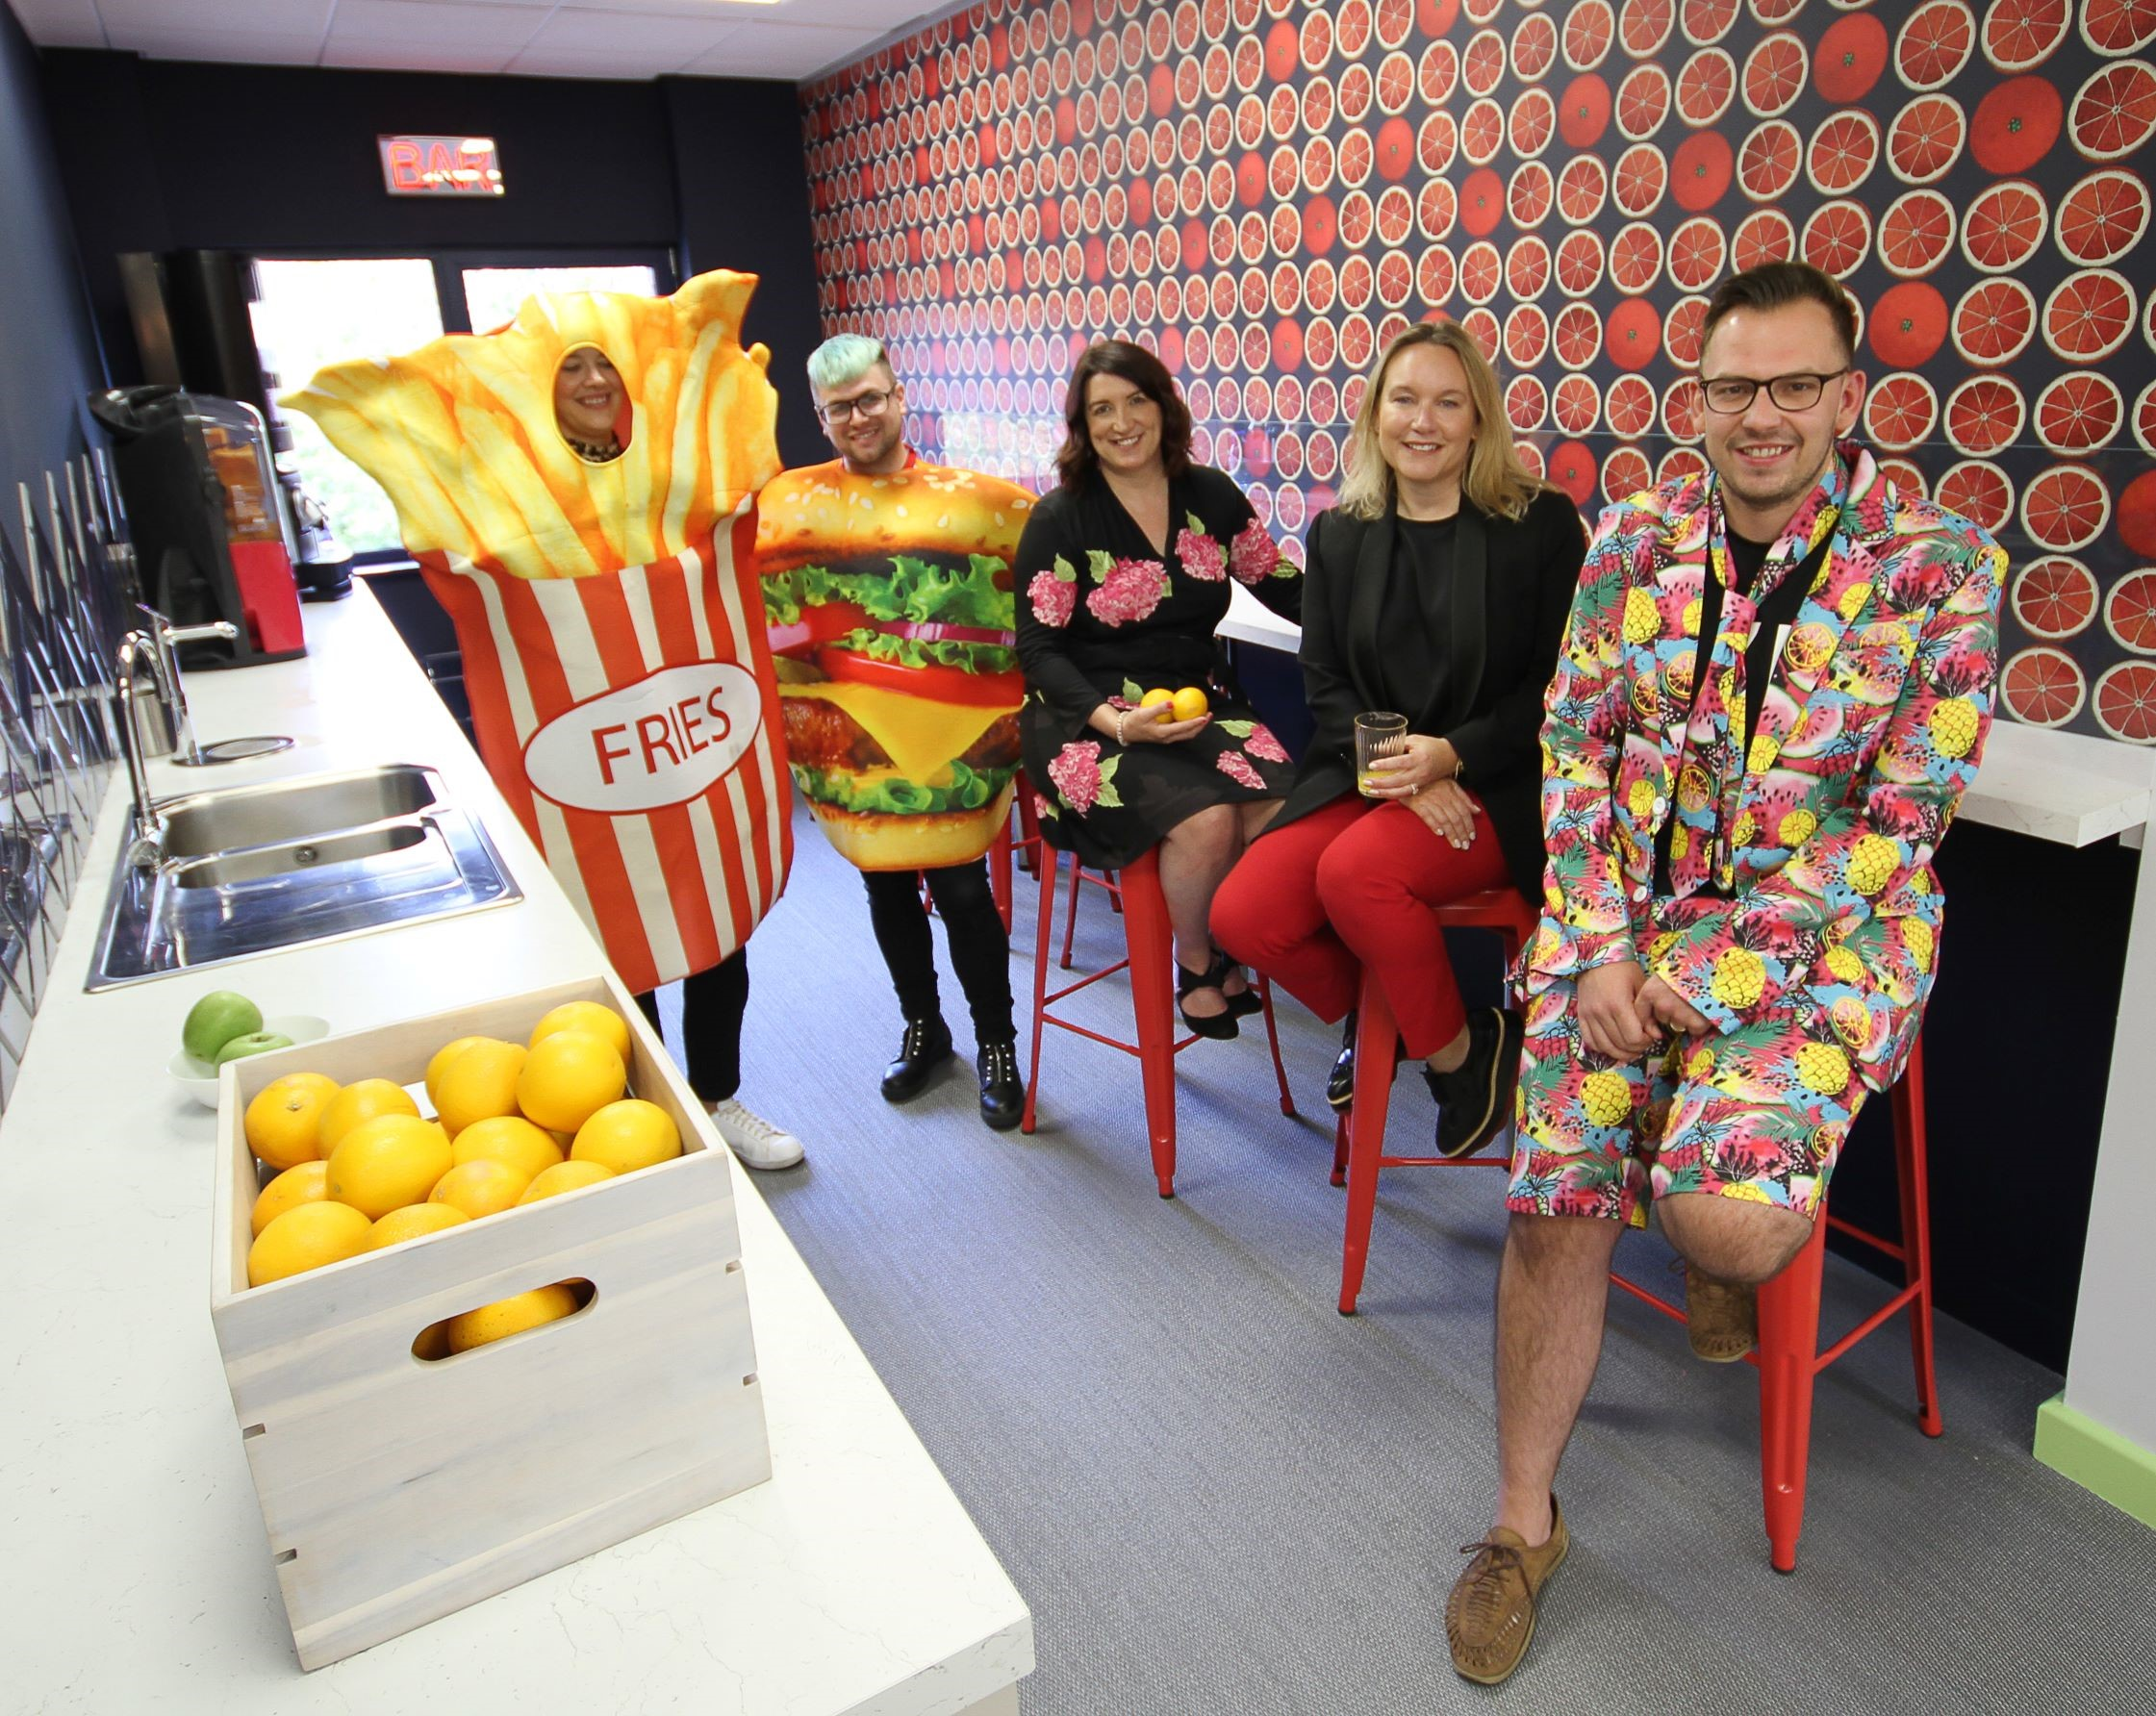 GLOBAL FANCY DRESS BUSINESS OPENS DOORS OF ITS NEW 13,000 SQ FT PREMISES